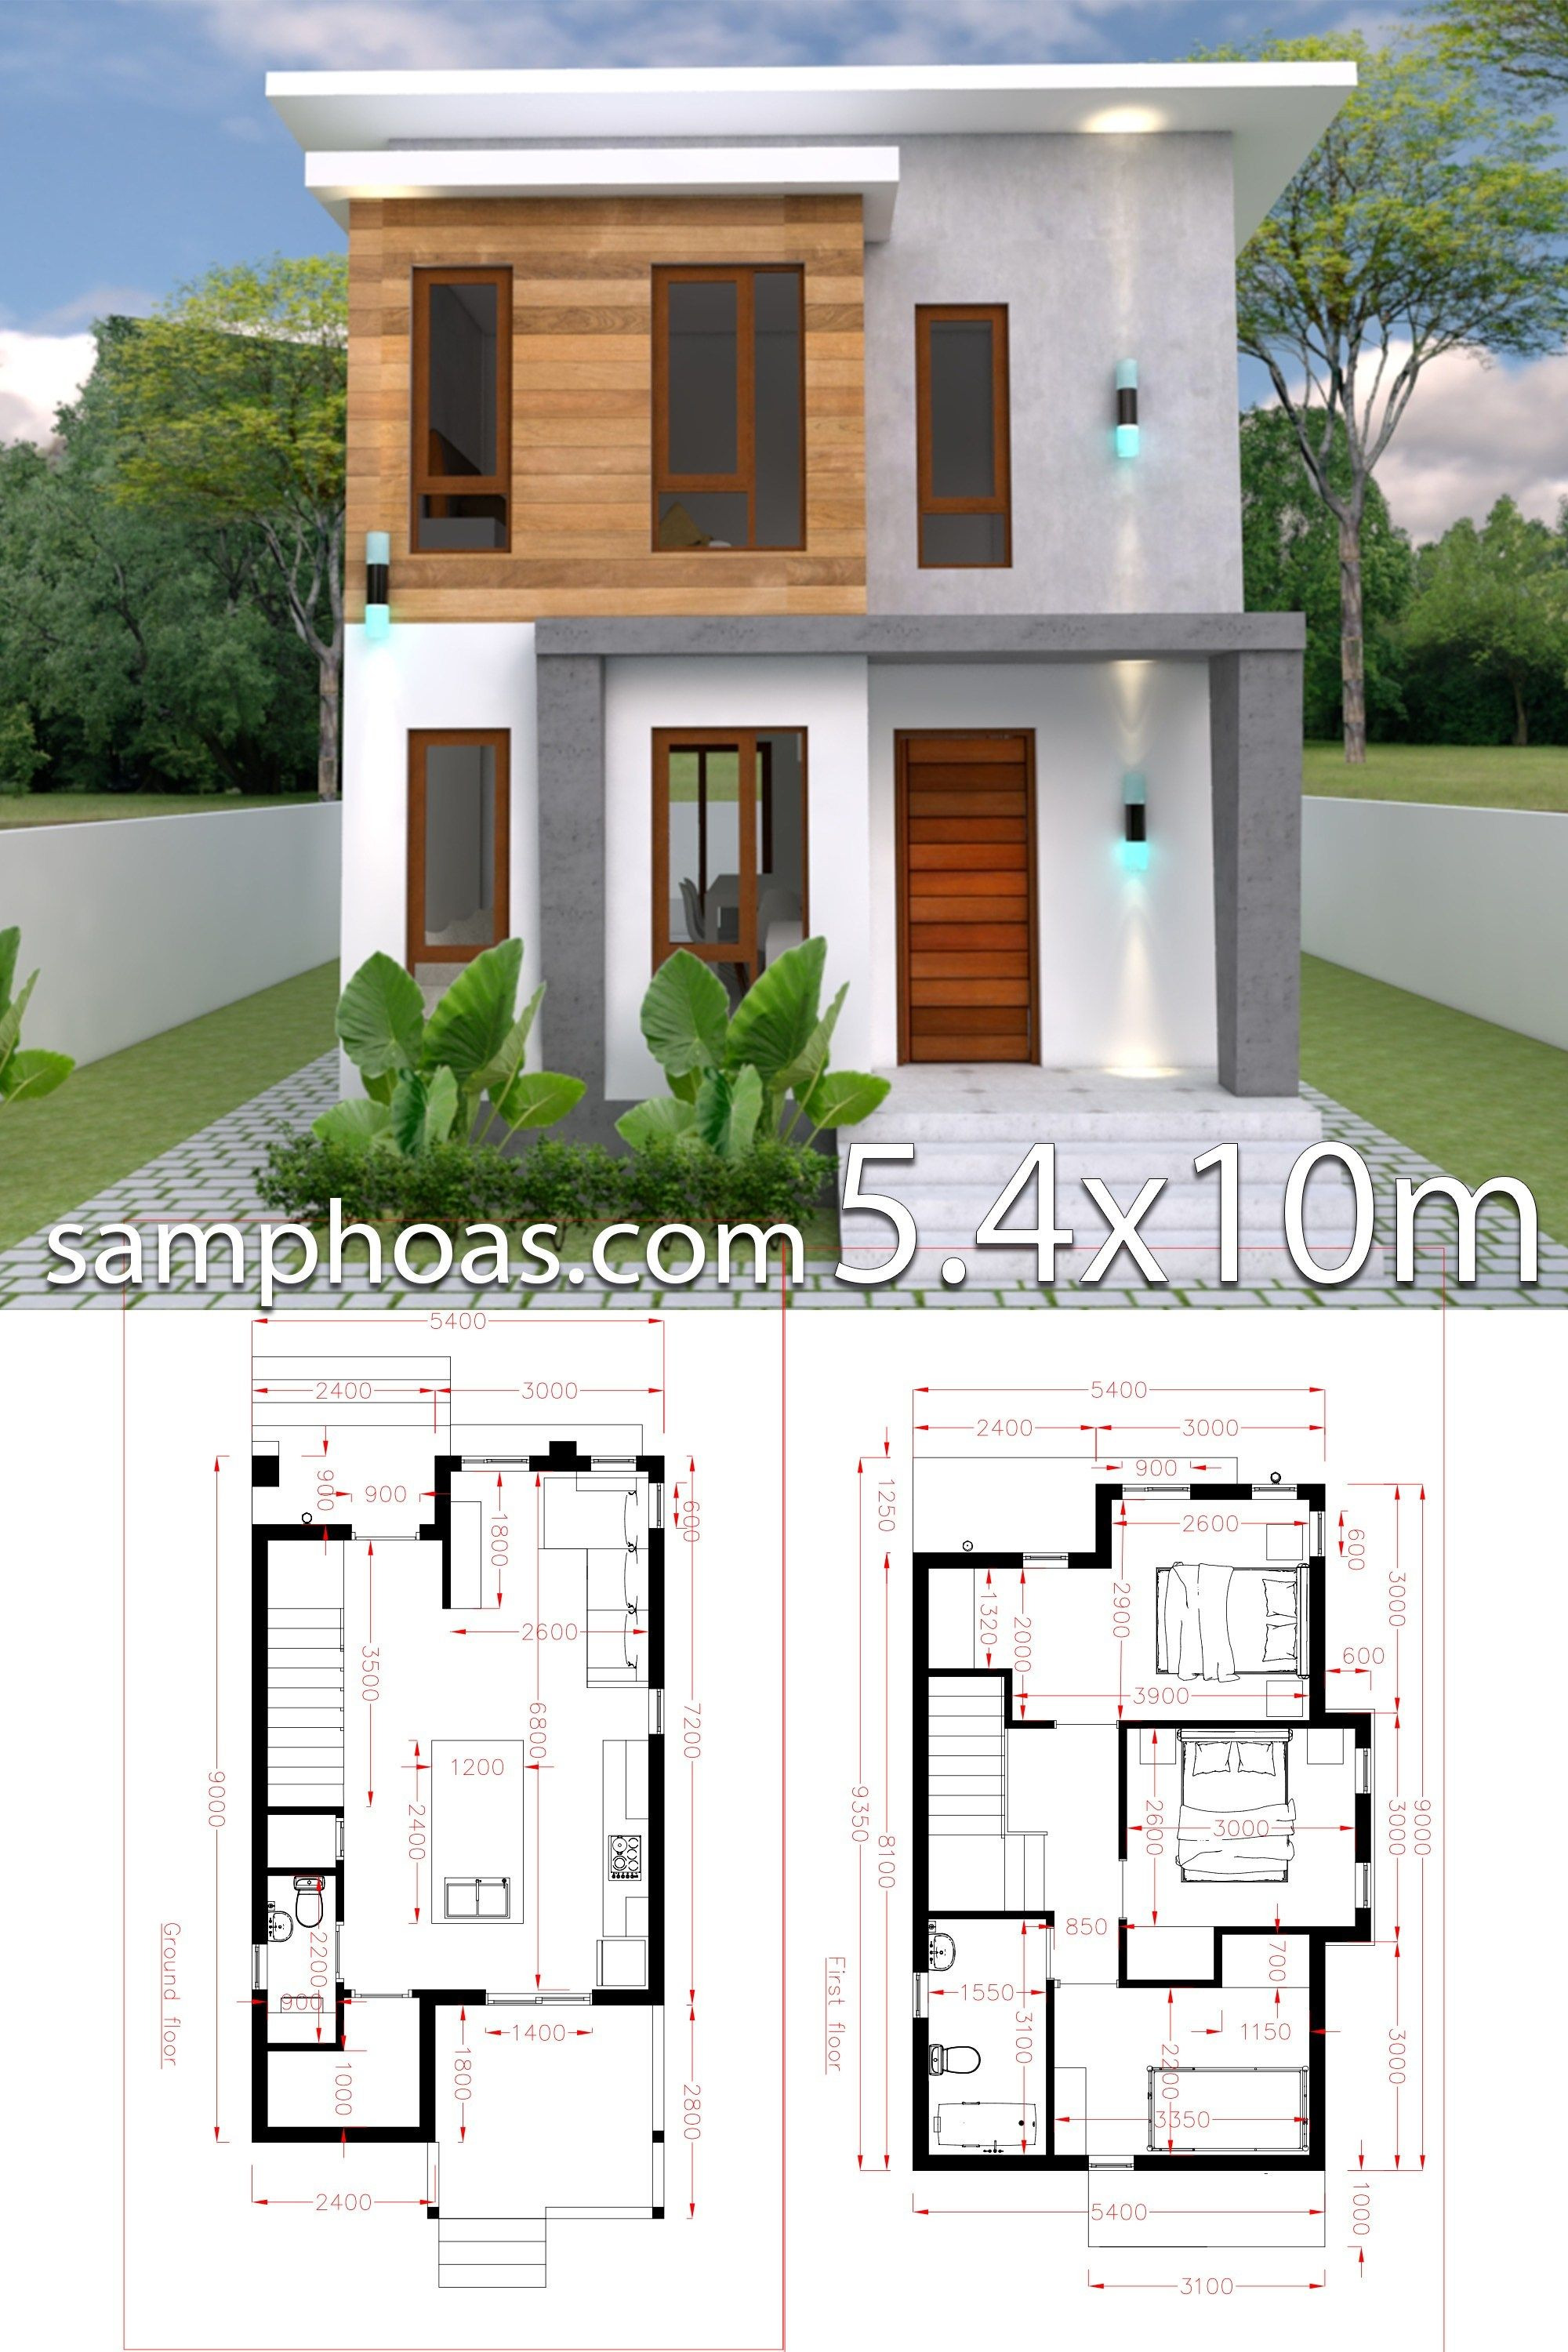 Simple Small House Plans Lovely Small Home Design Plan 5 4x10m with 3 Bedroom